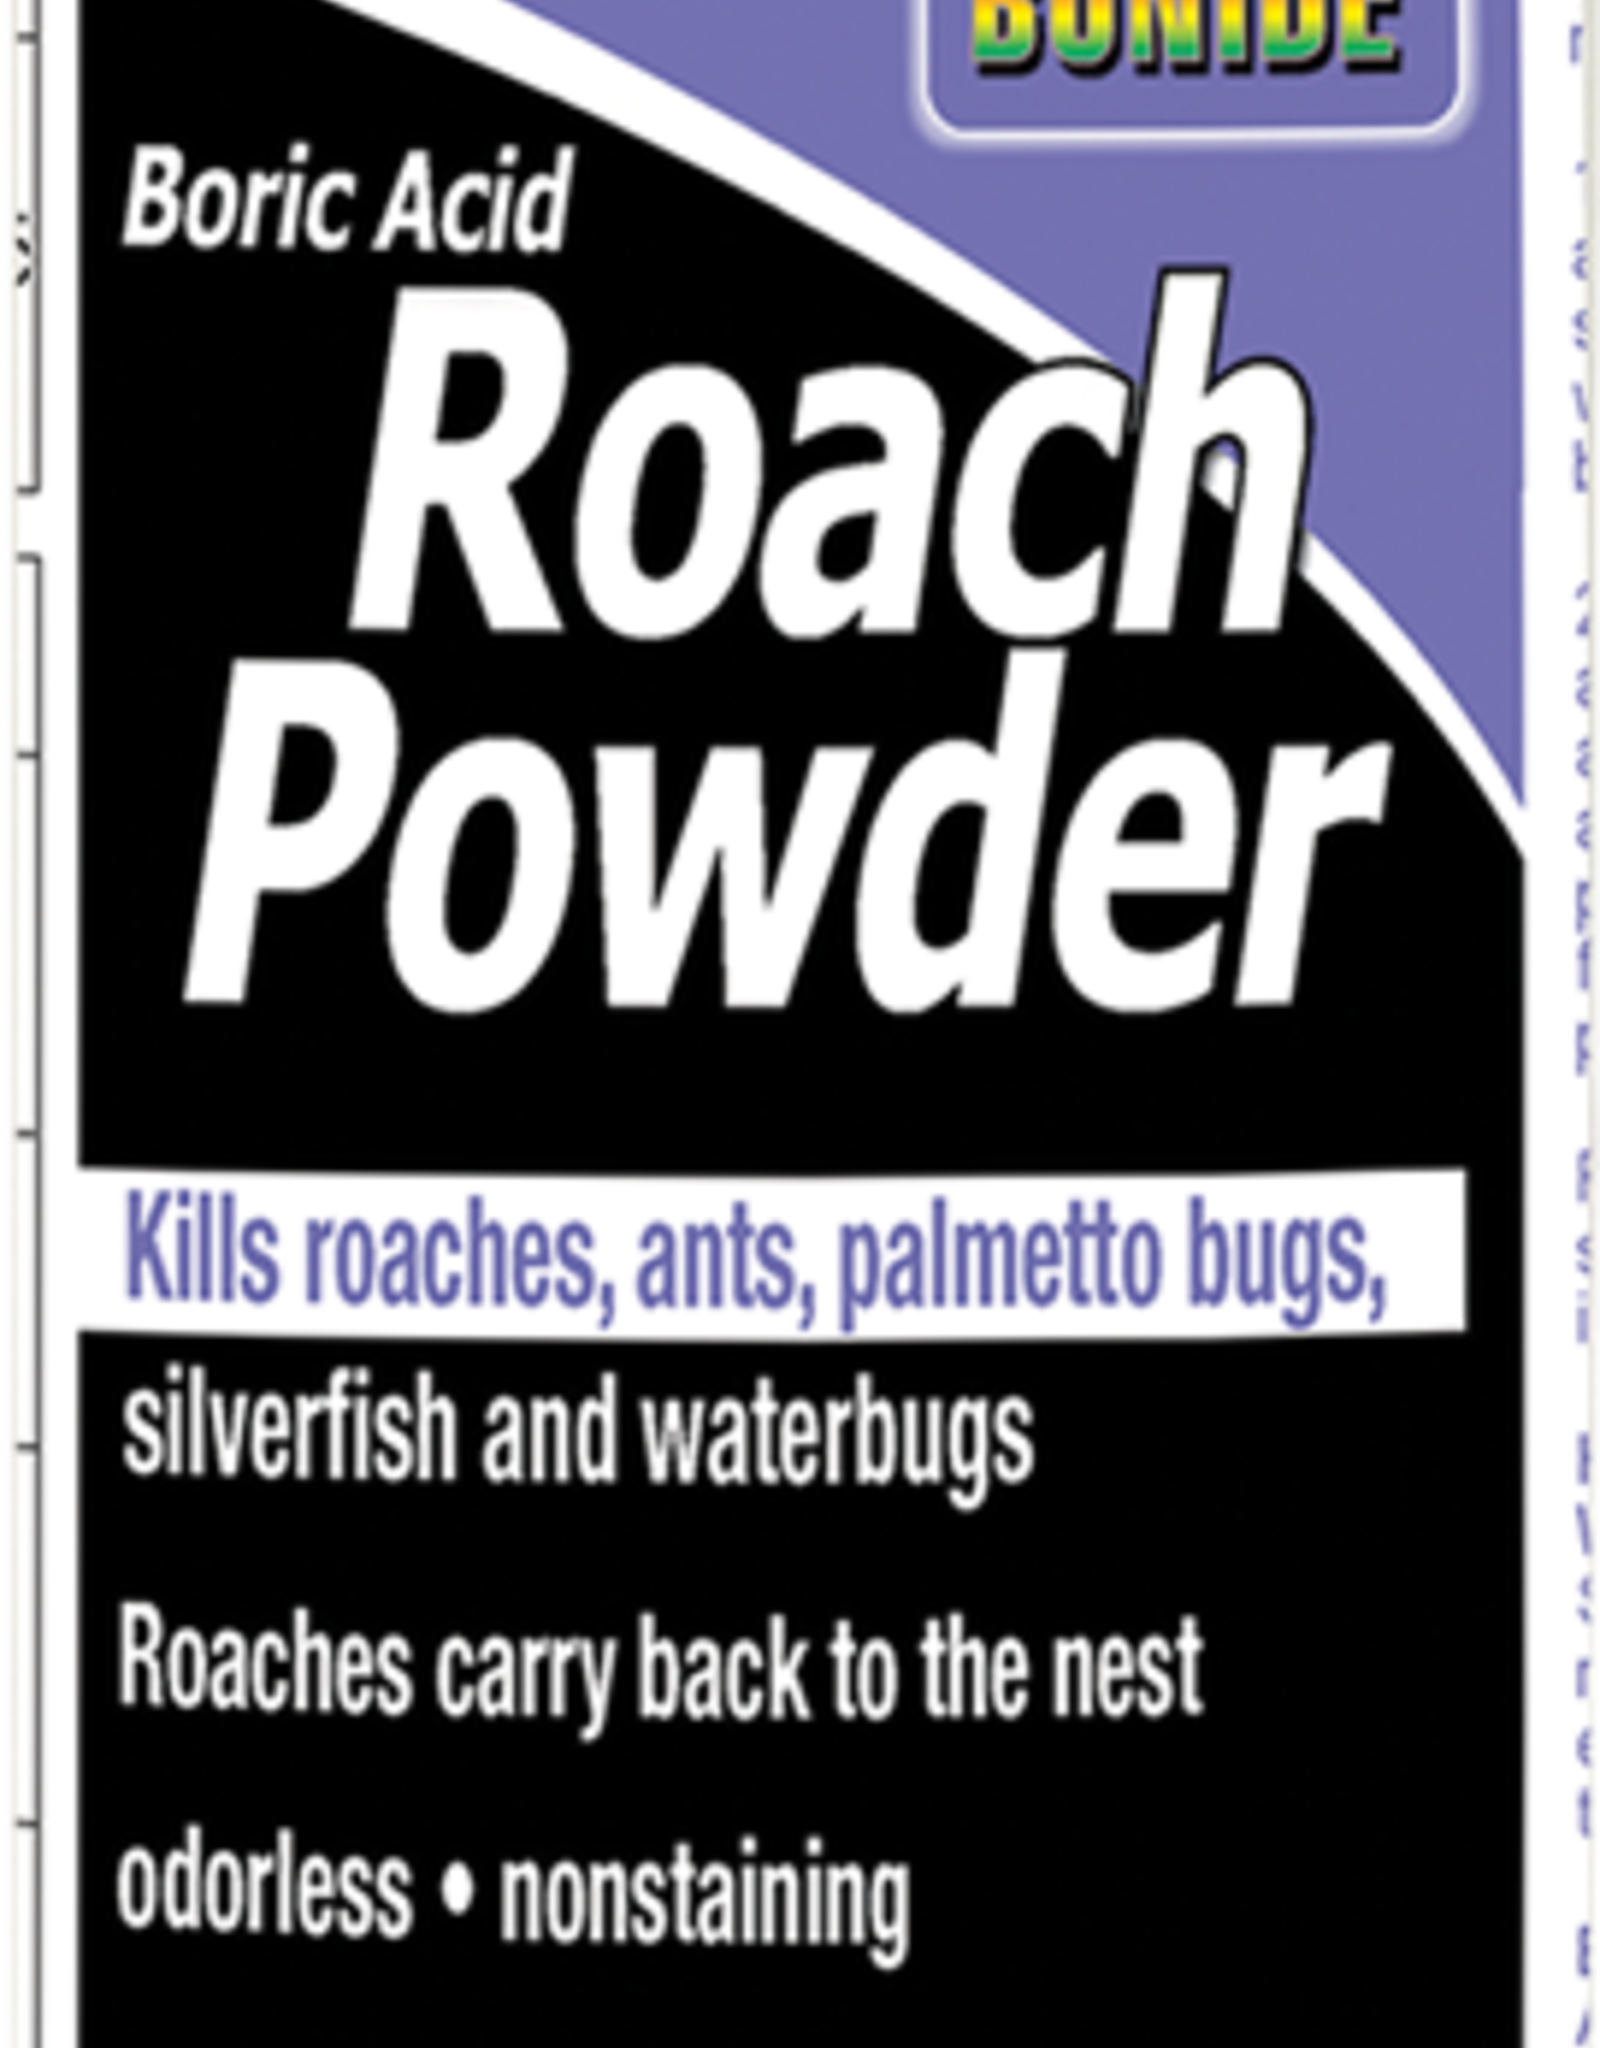 BONIDE PRODUCTS INC     P BONIDE BORIC ACID ROACH POWDER 1LB